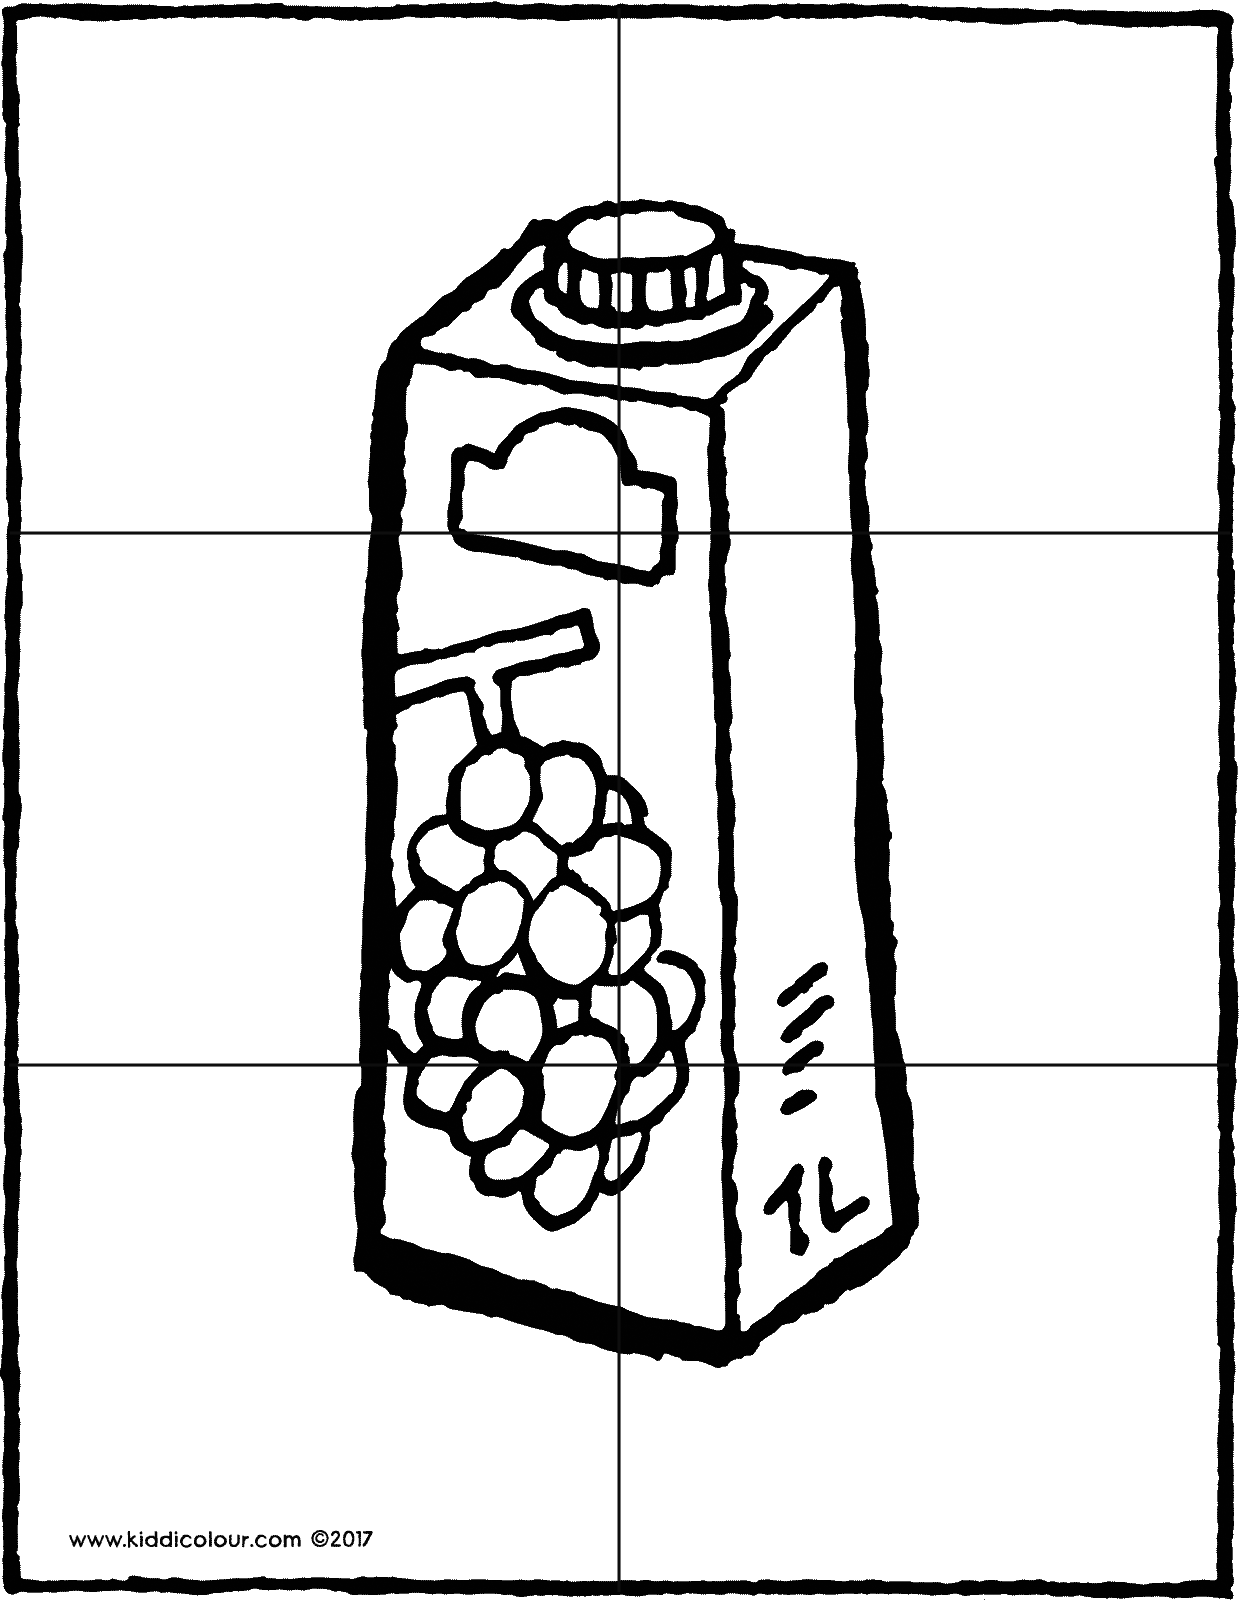 6-piece carton of grape juice puzzle colouring page drawing picture 01V